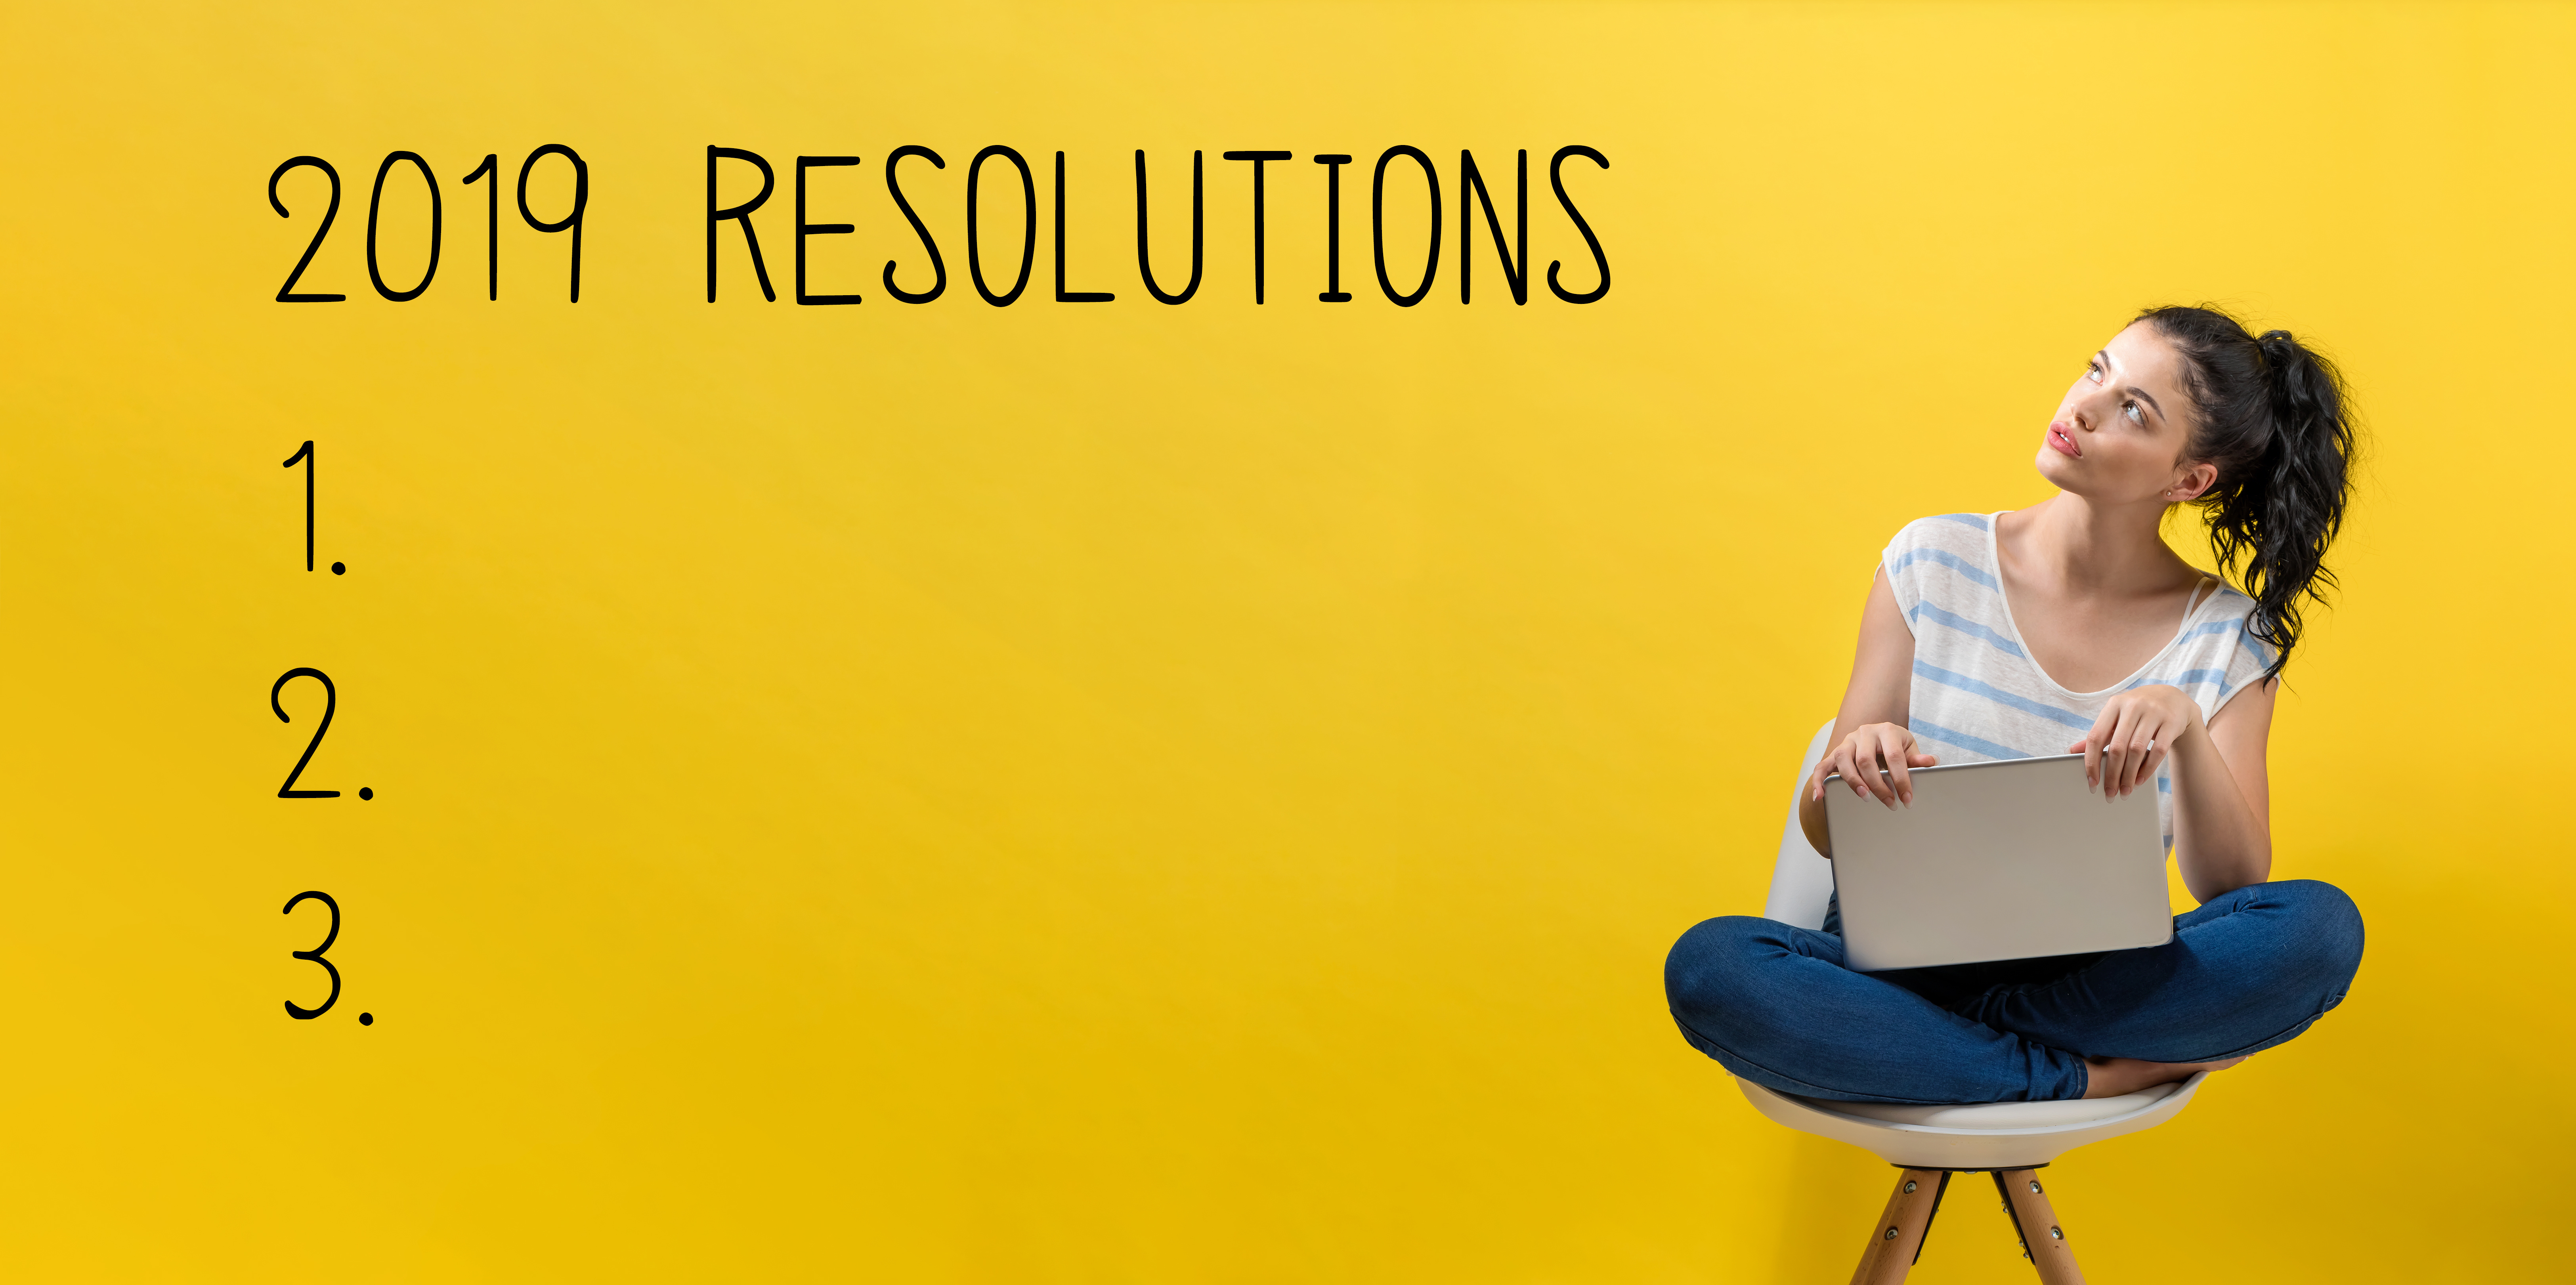 College Prep New Year's Resolutions